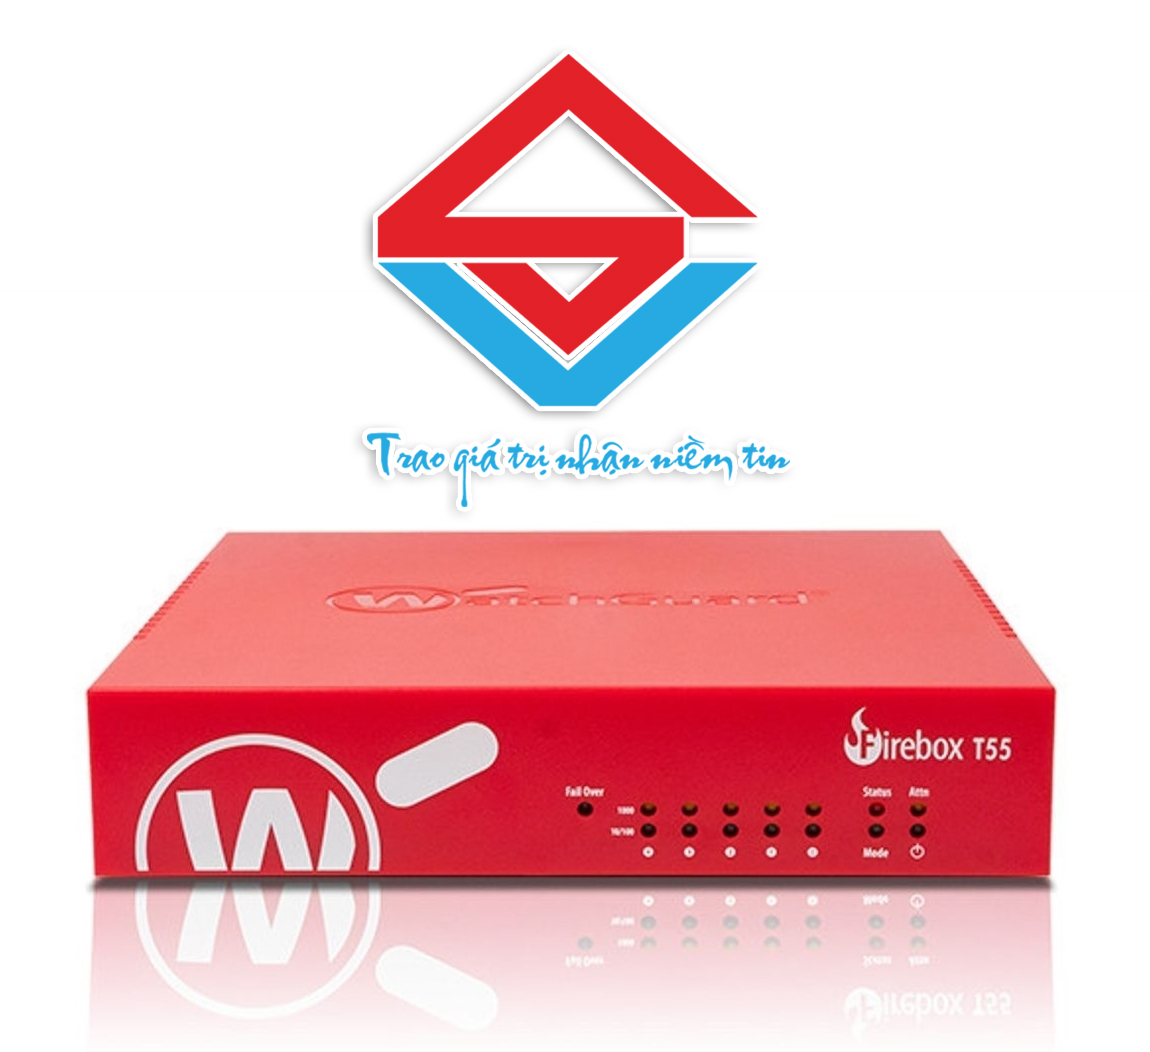 WatchGuard Firebox T55/T55-W